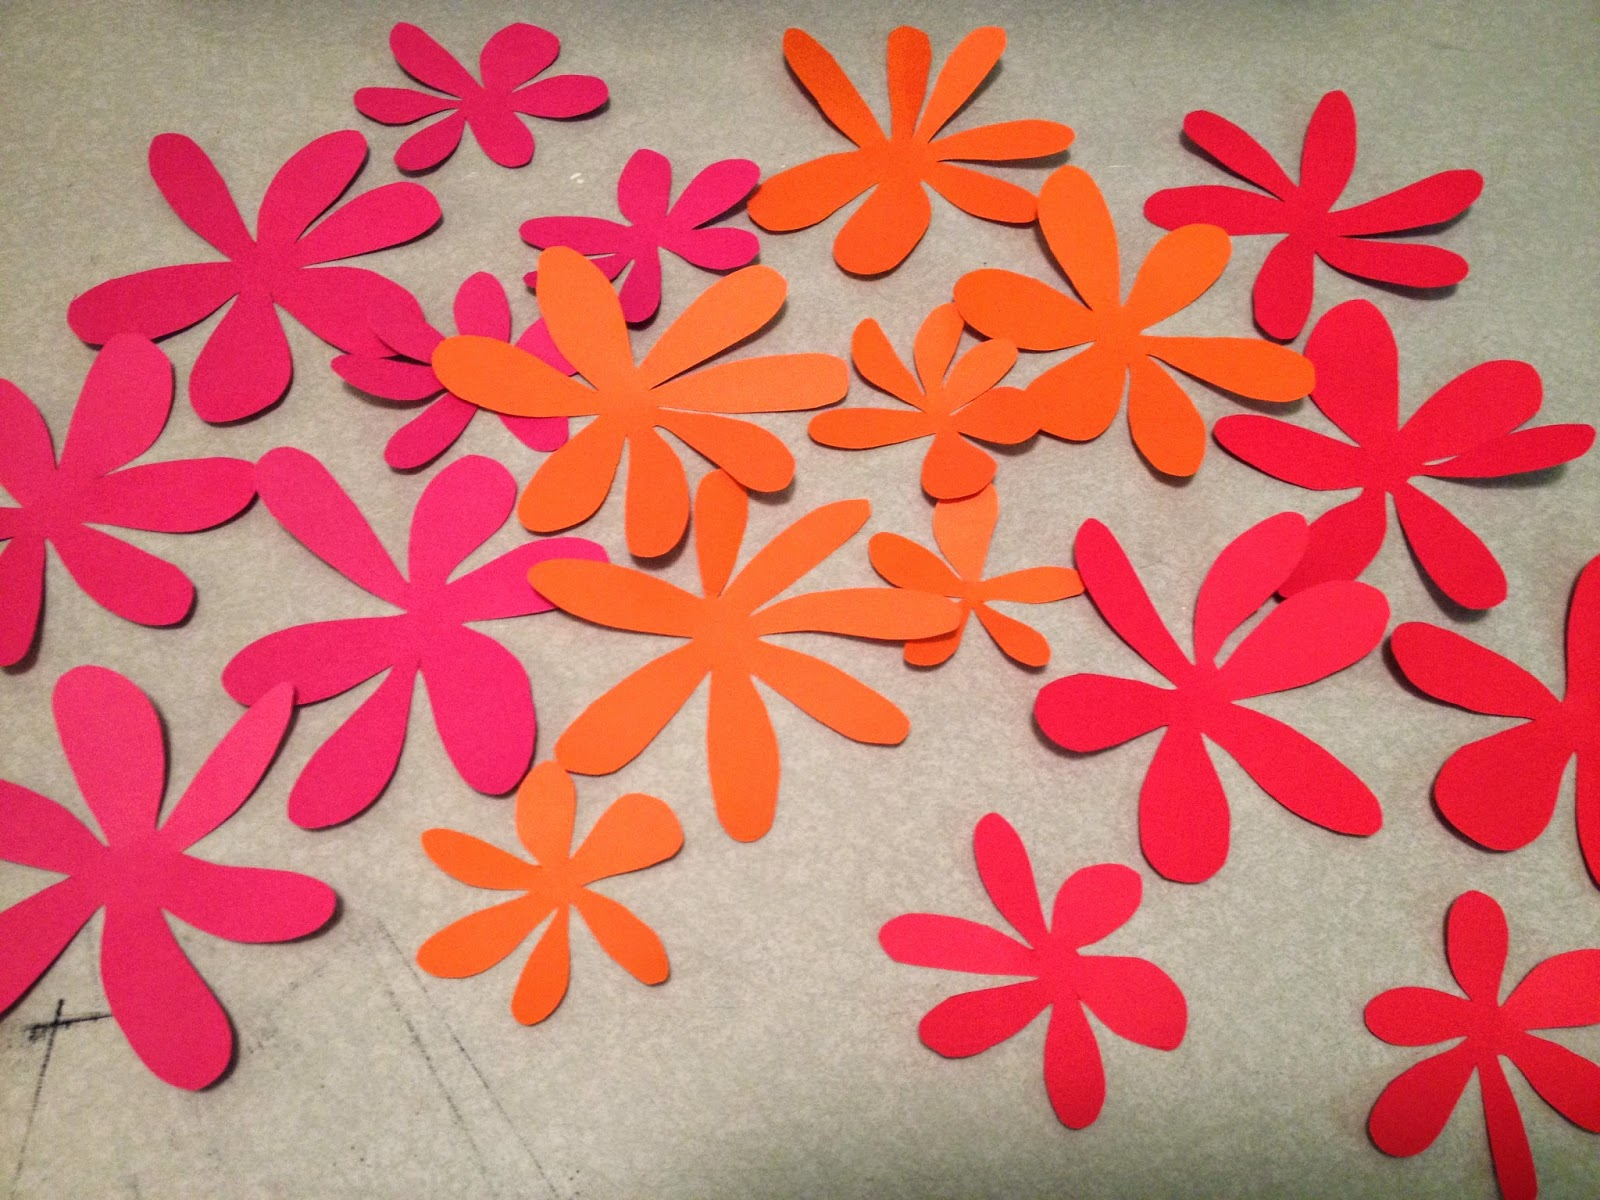 Simple paper cutting flowers gallery flower decoration ideas simple paper cutting flowers images flower decoration ideas simple paper cutting flowers images flower decoration ideas mightylinksfo